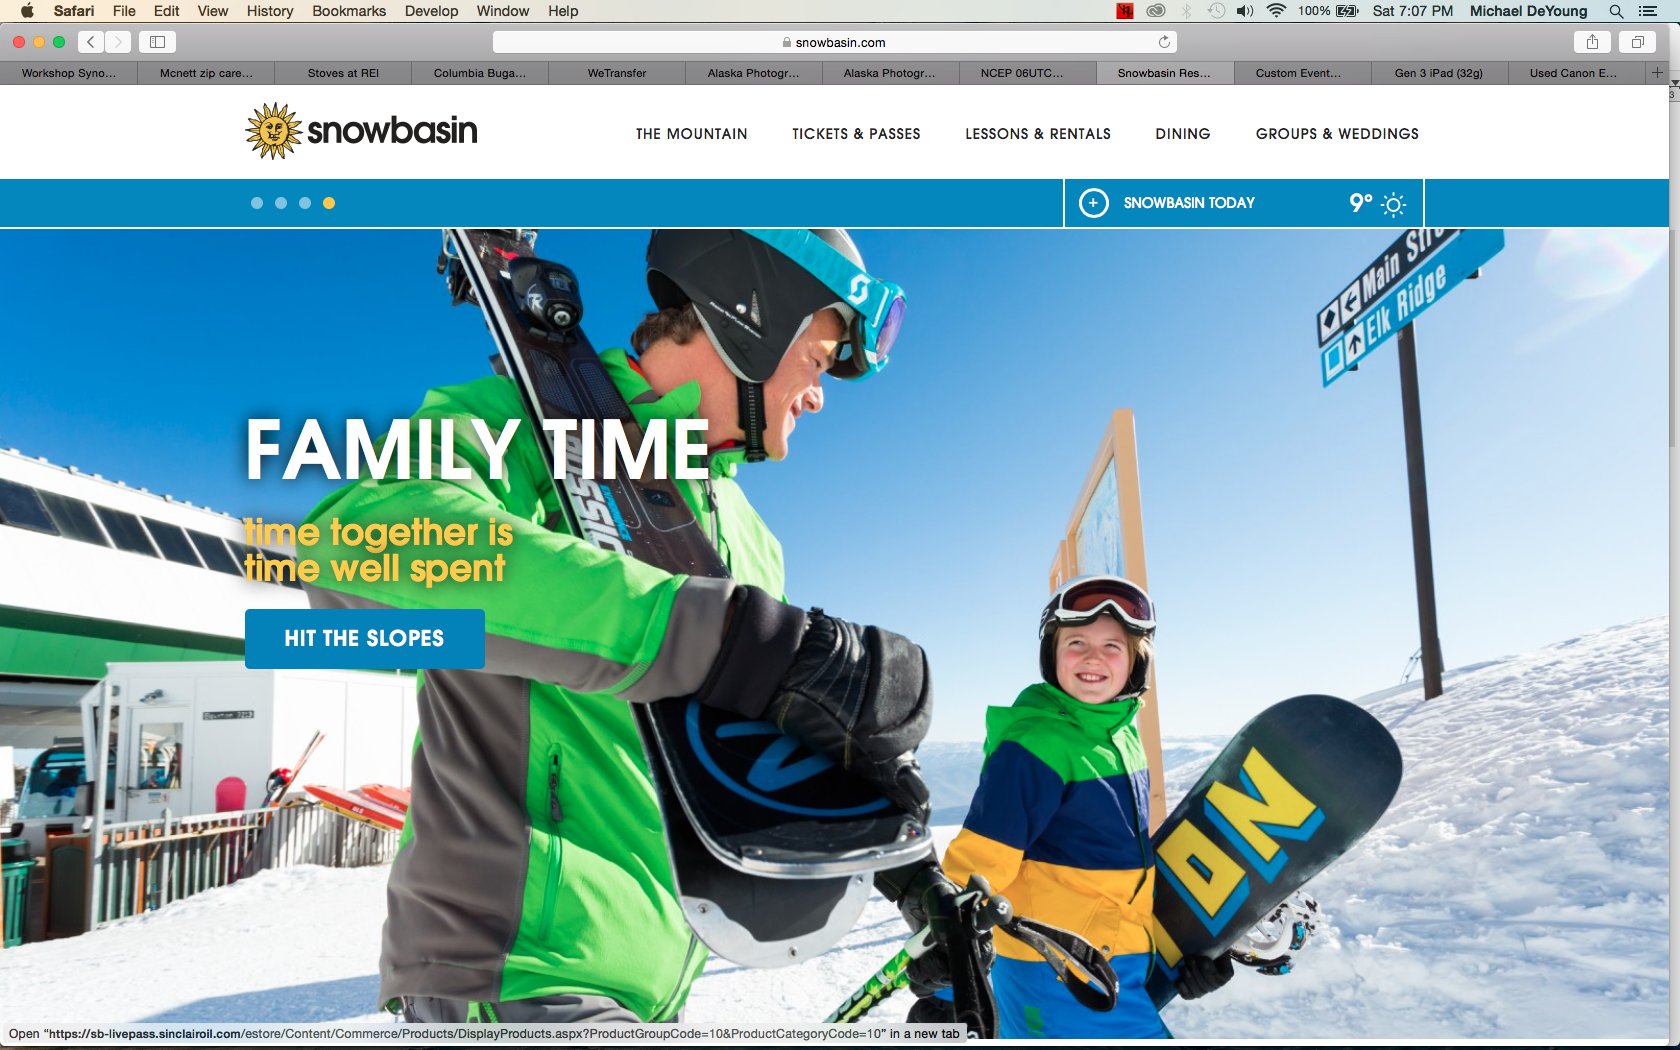 Snowbasin Ski Resort Website Photographer Michael DeYoung